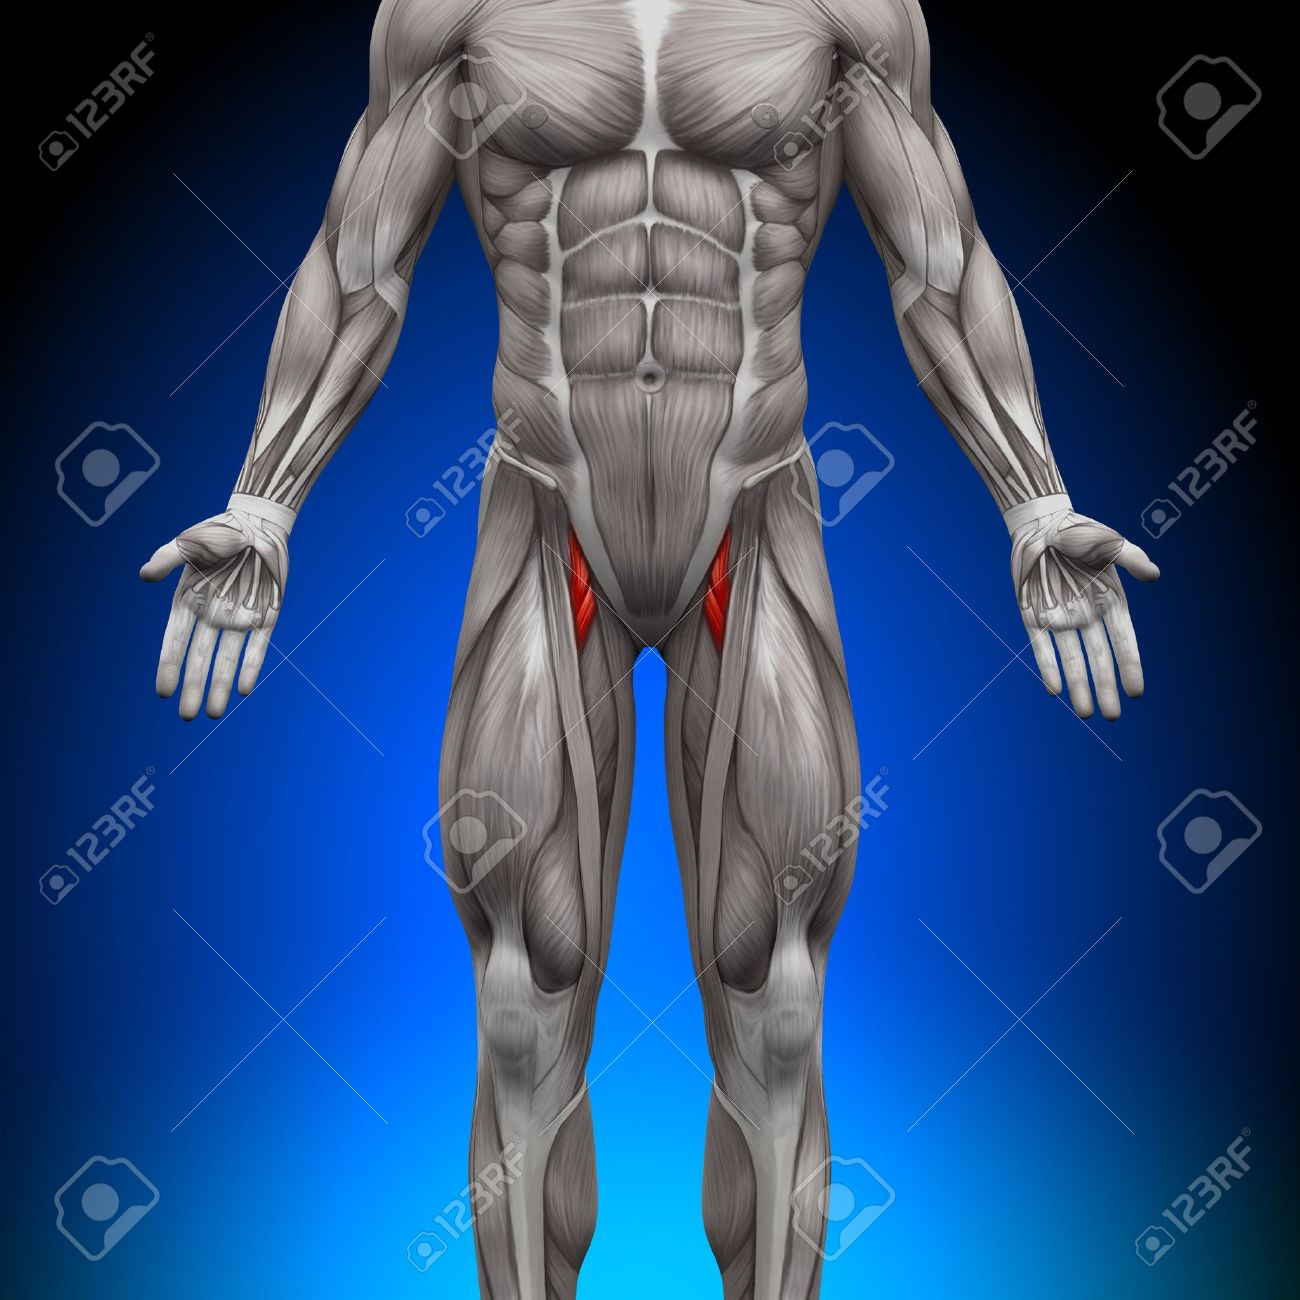 Thighs Anatomy Muscles Stock Photo, Picture And Royalty Free Image ...